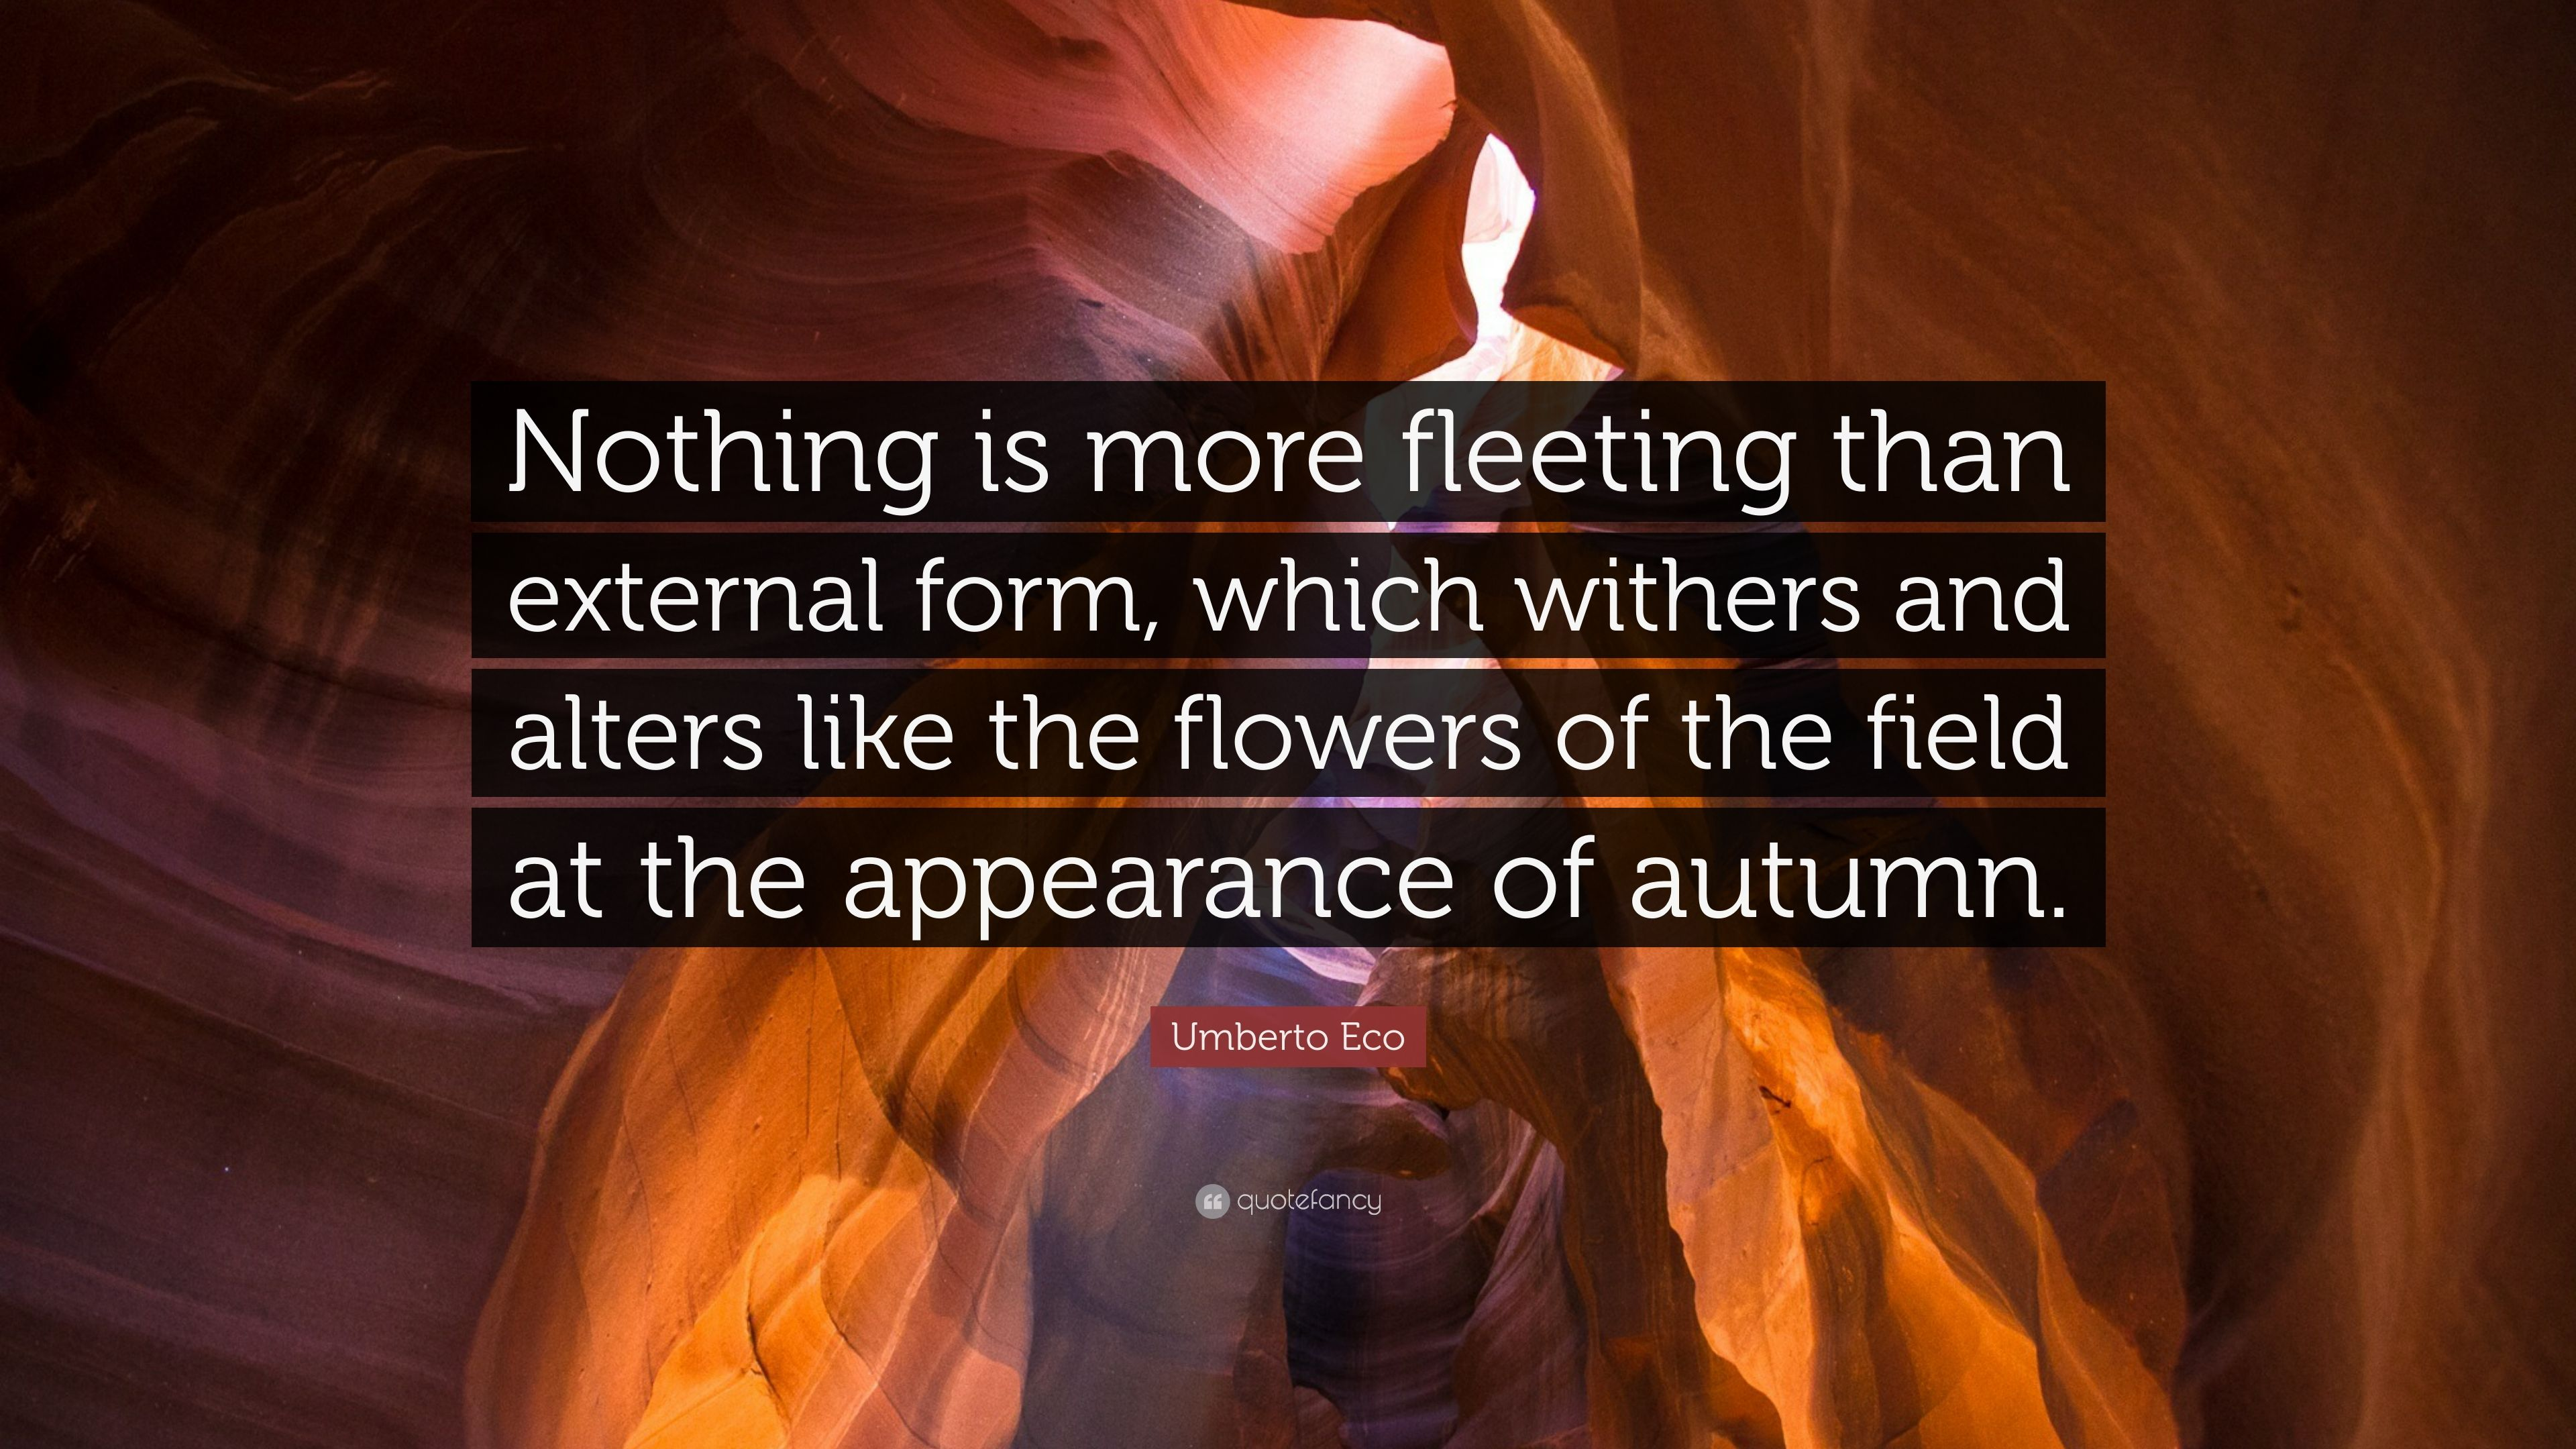 Exceptional Umberto Eco Quote: U201cNothing Is More Fleeting Than External Form, Which  Withers And